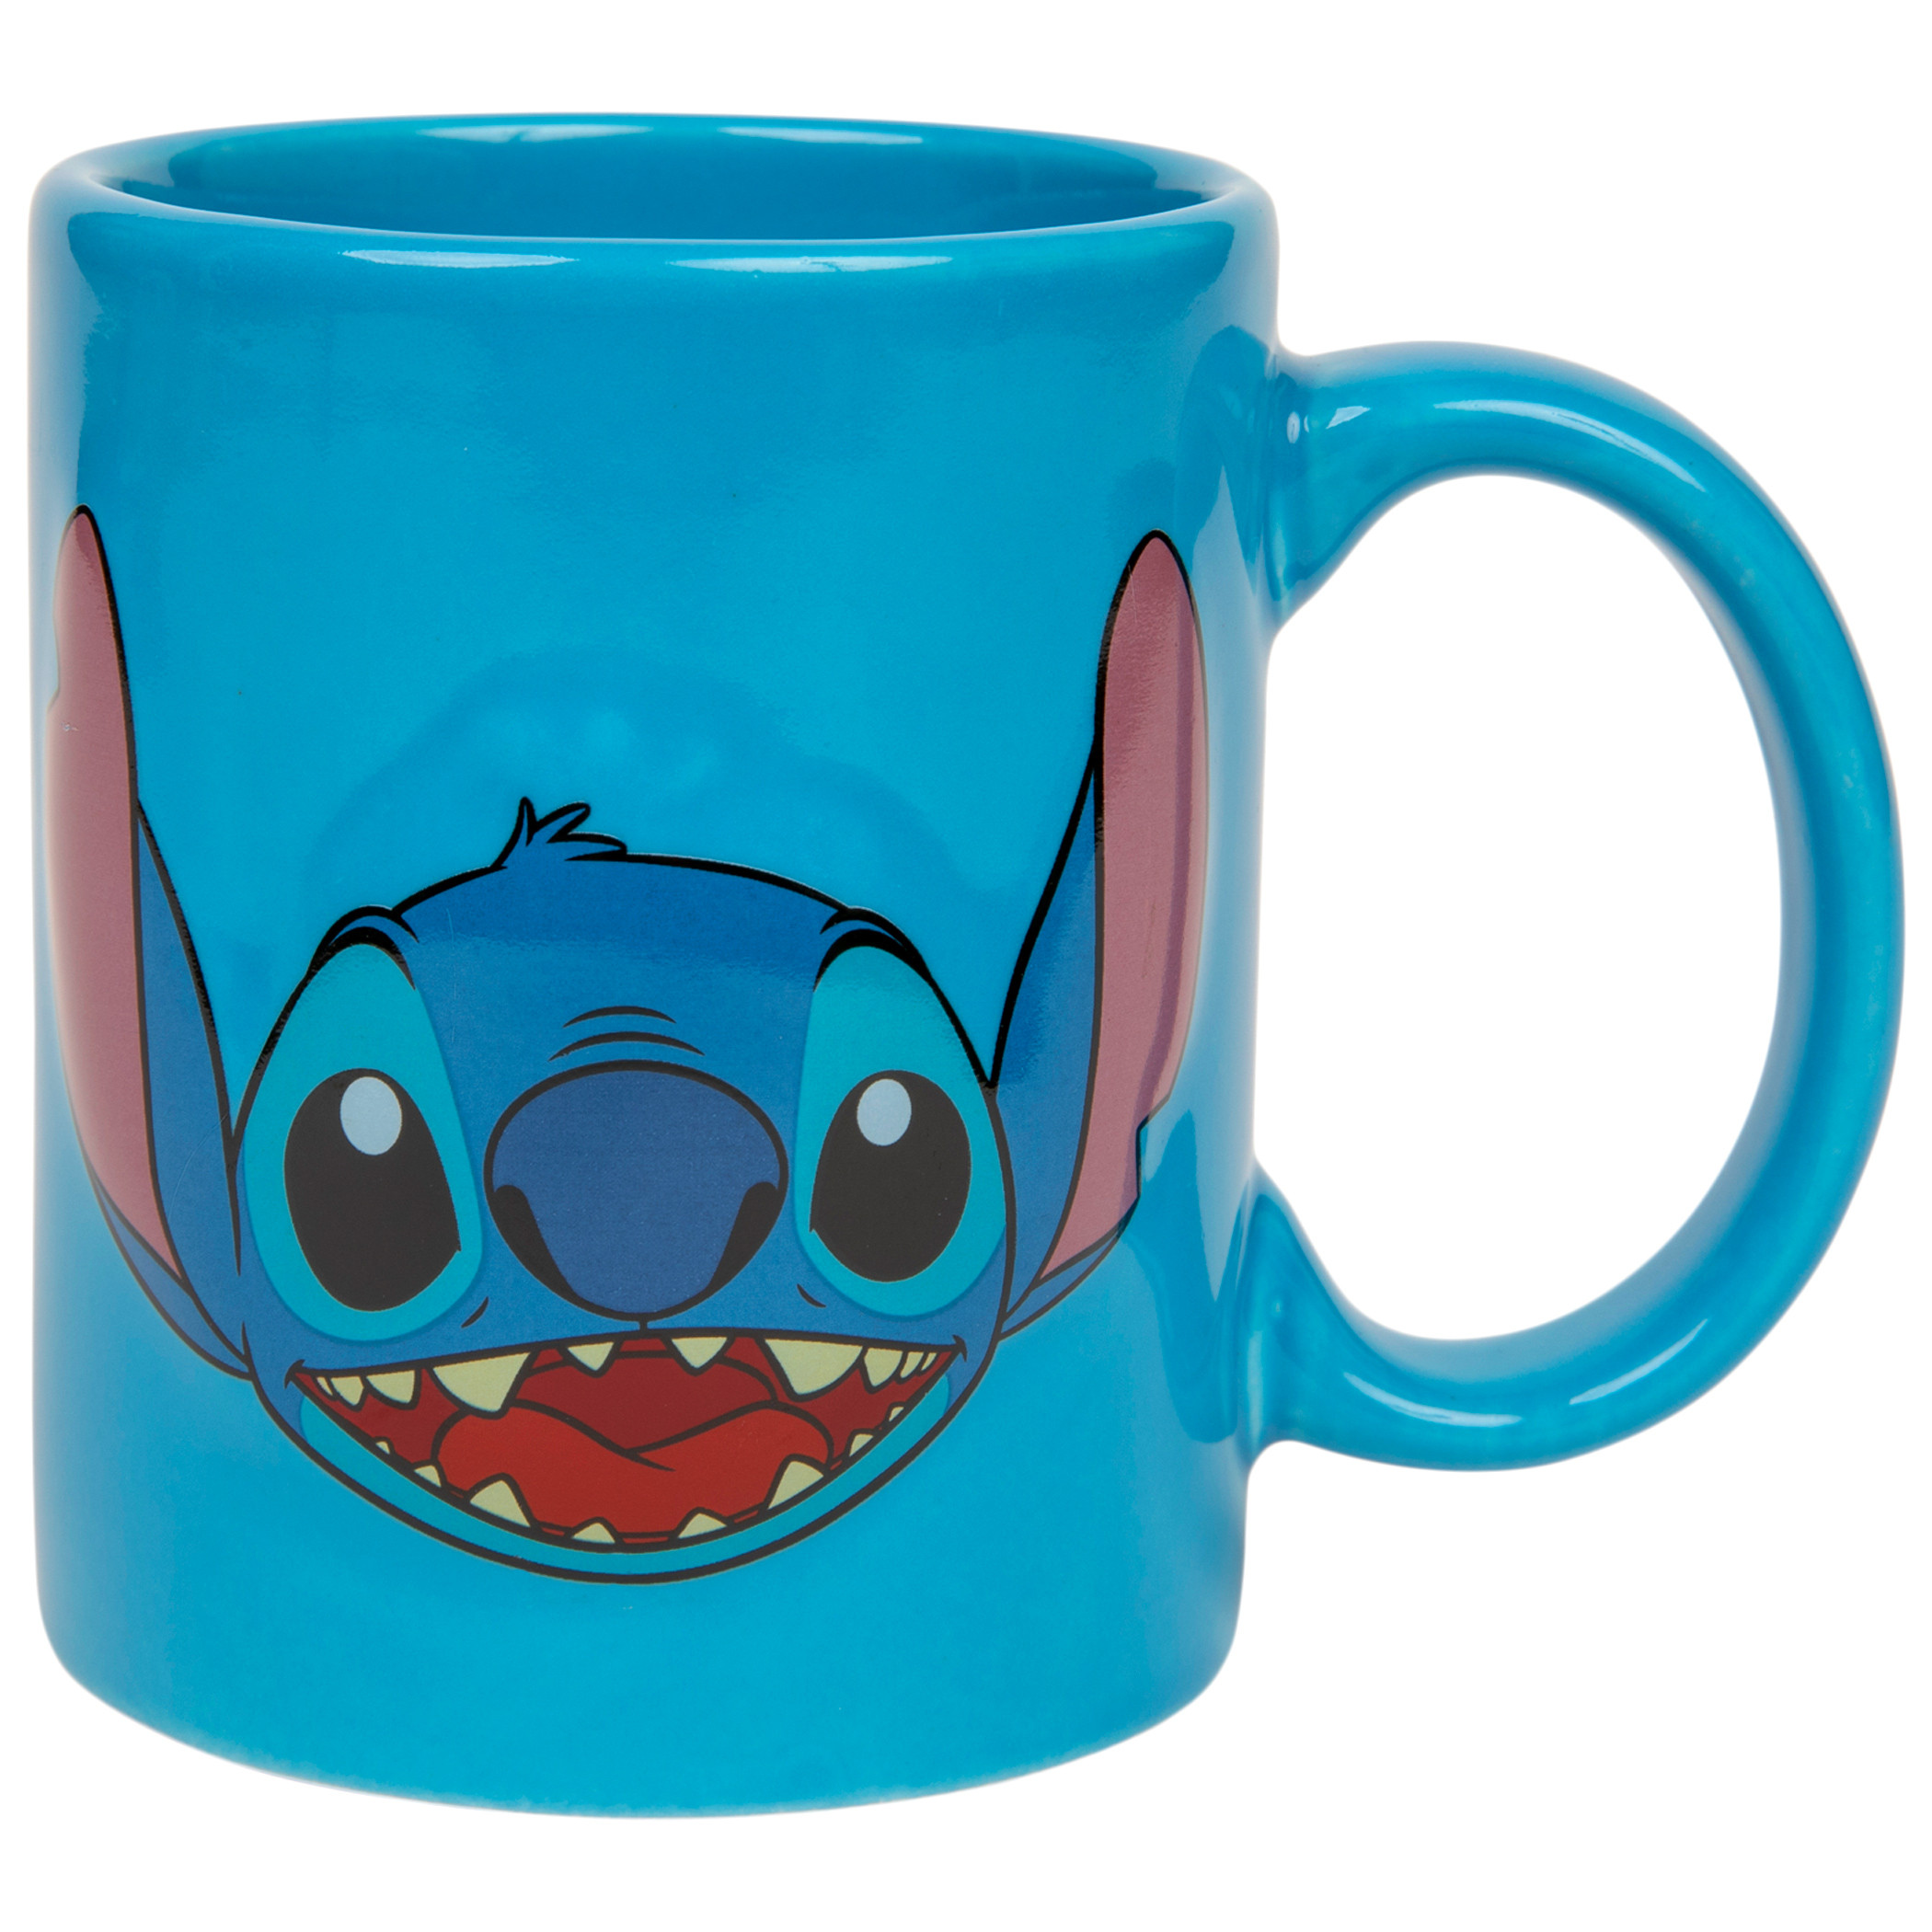 Lilo and Stitch Disney Character Stitch Full Face Relief 11oz Mug